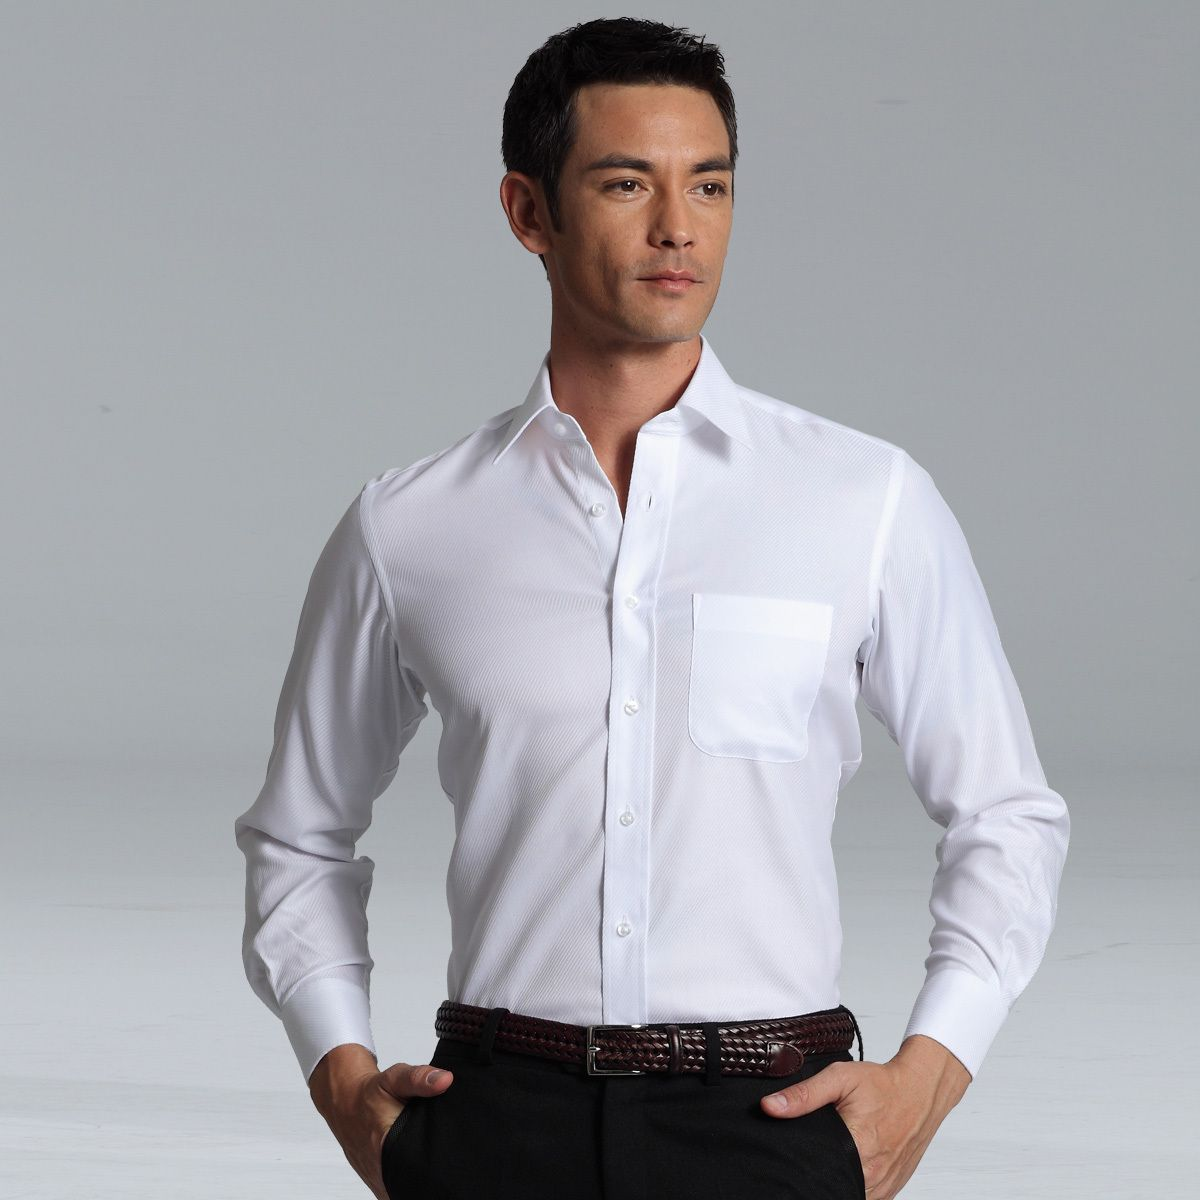 Images of White Long Sleeve Shirt For Men - Fashion Trends and Models